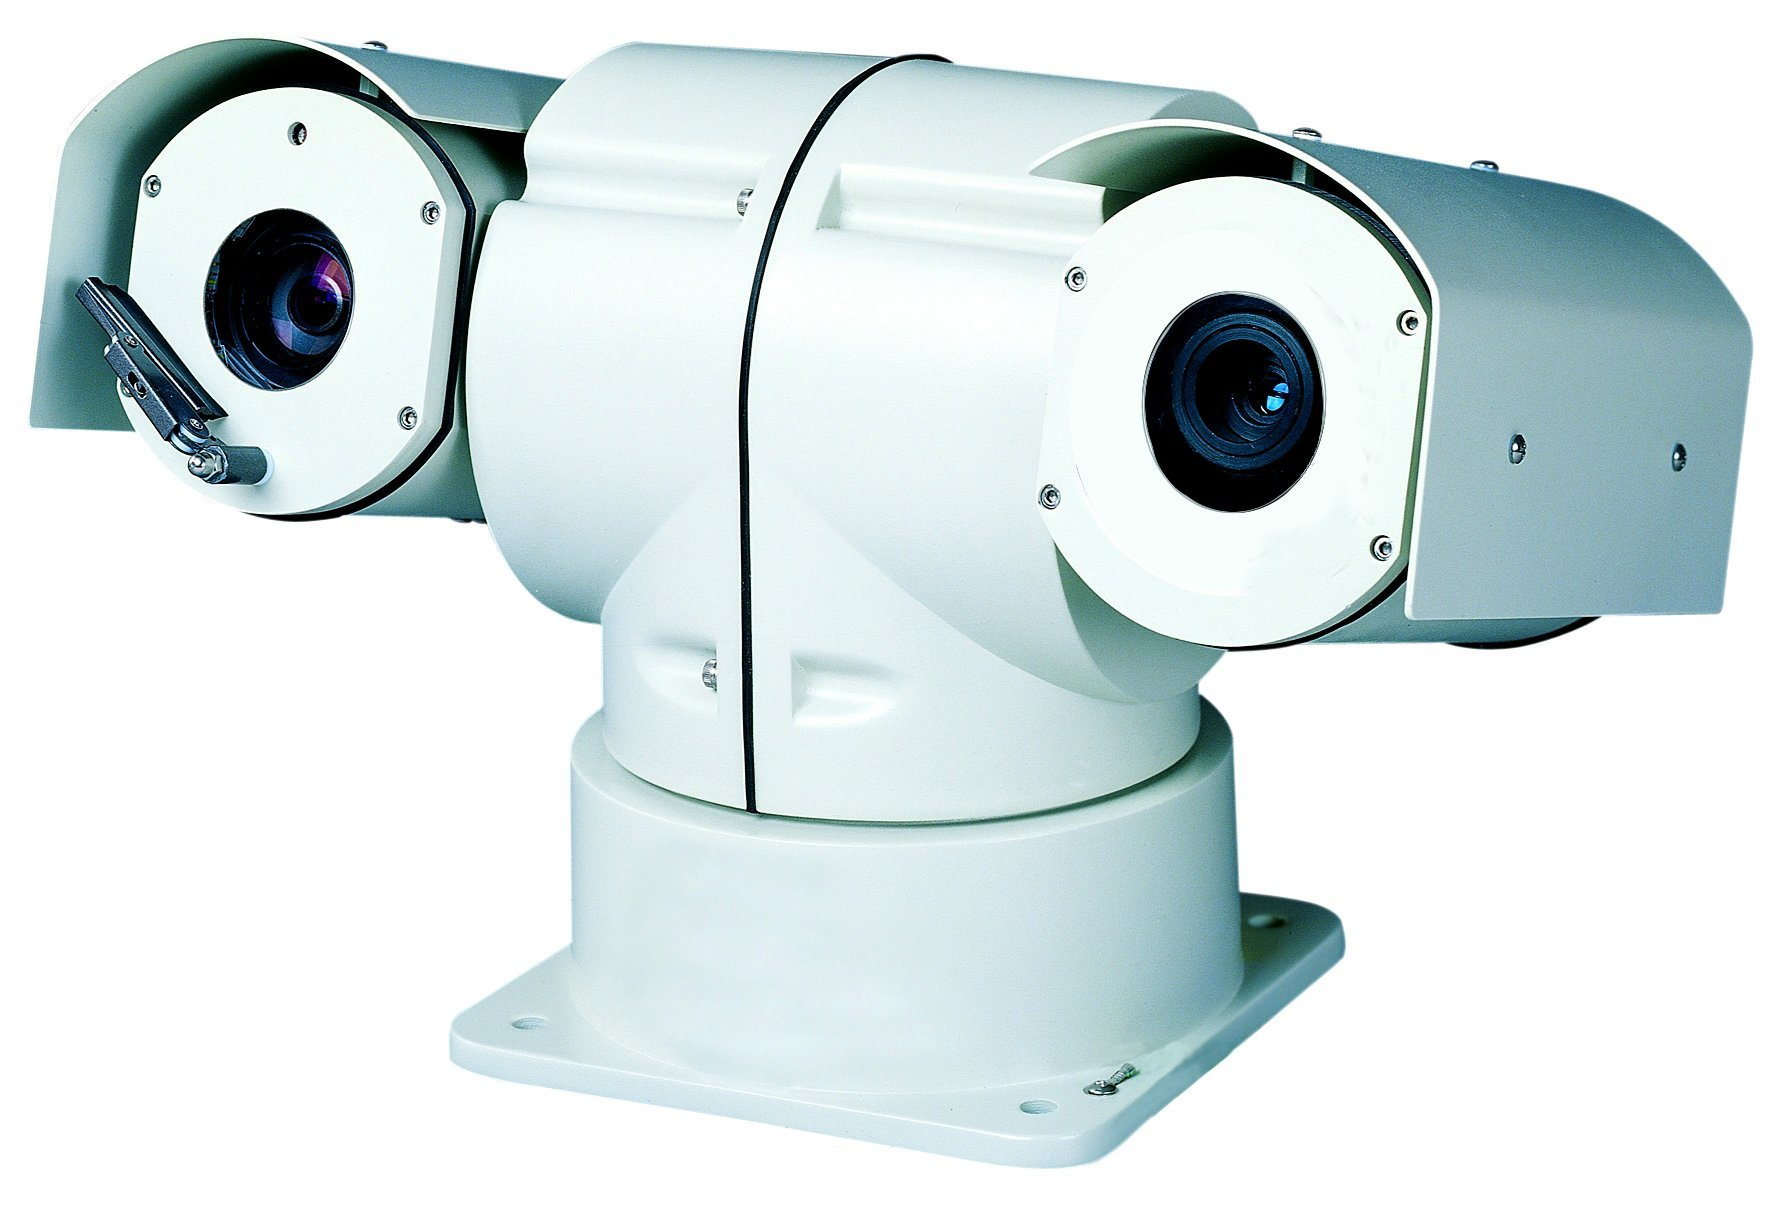 4k 3840 X 2160@30fps Thermal Laser PTZ HD Camera with IP Outdoor with Wiper